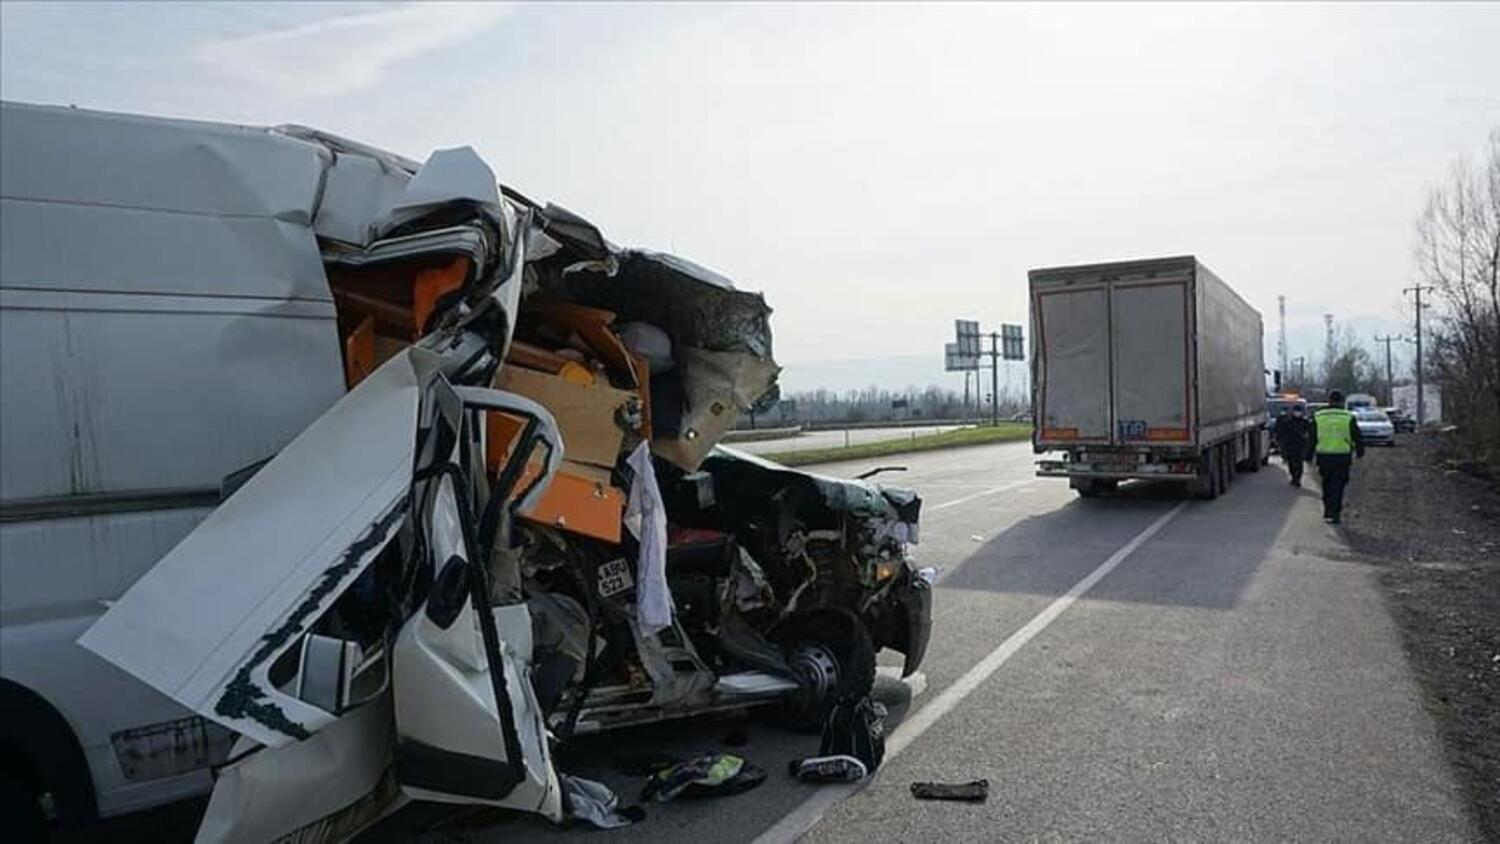 Can Oncu. Spaventoso incidente, ma solo poche ferite